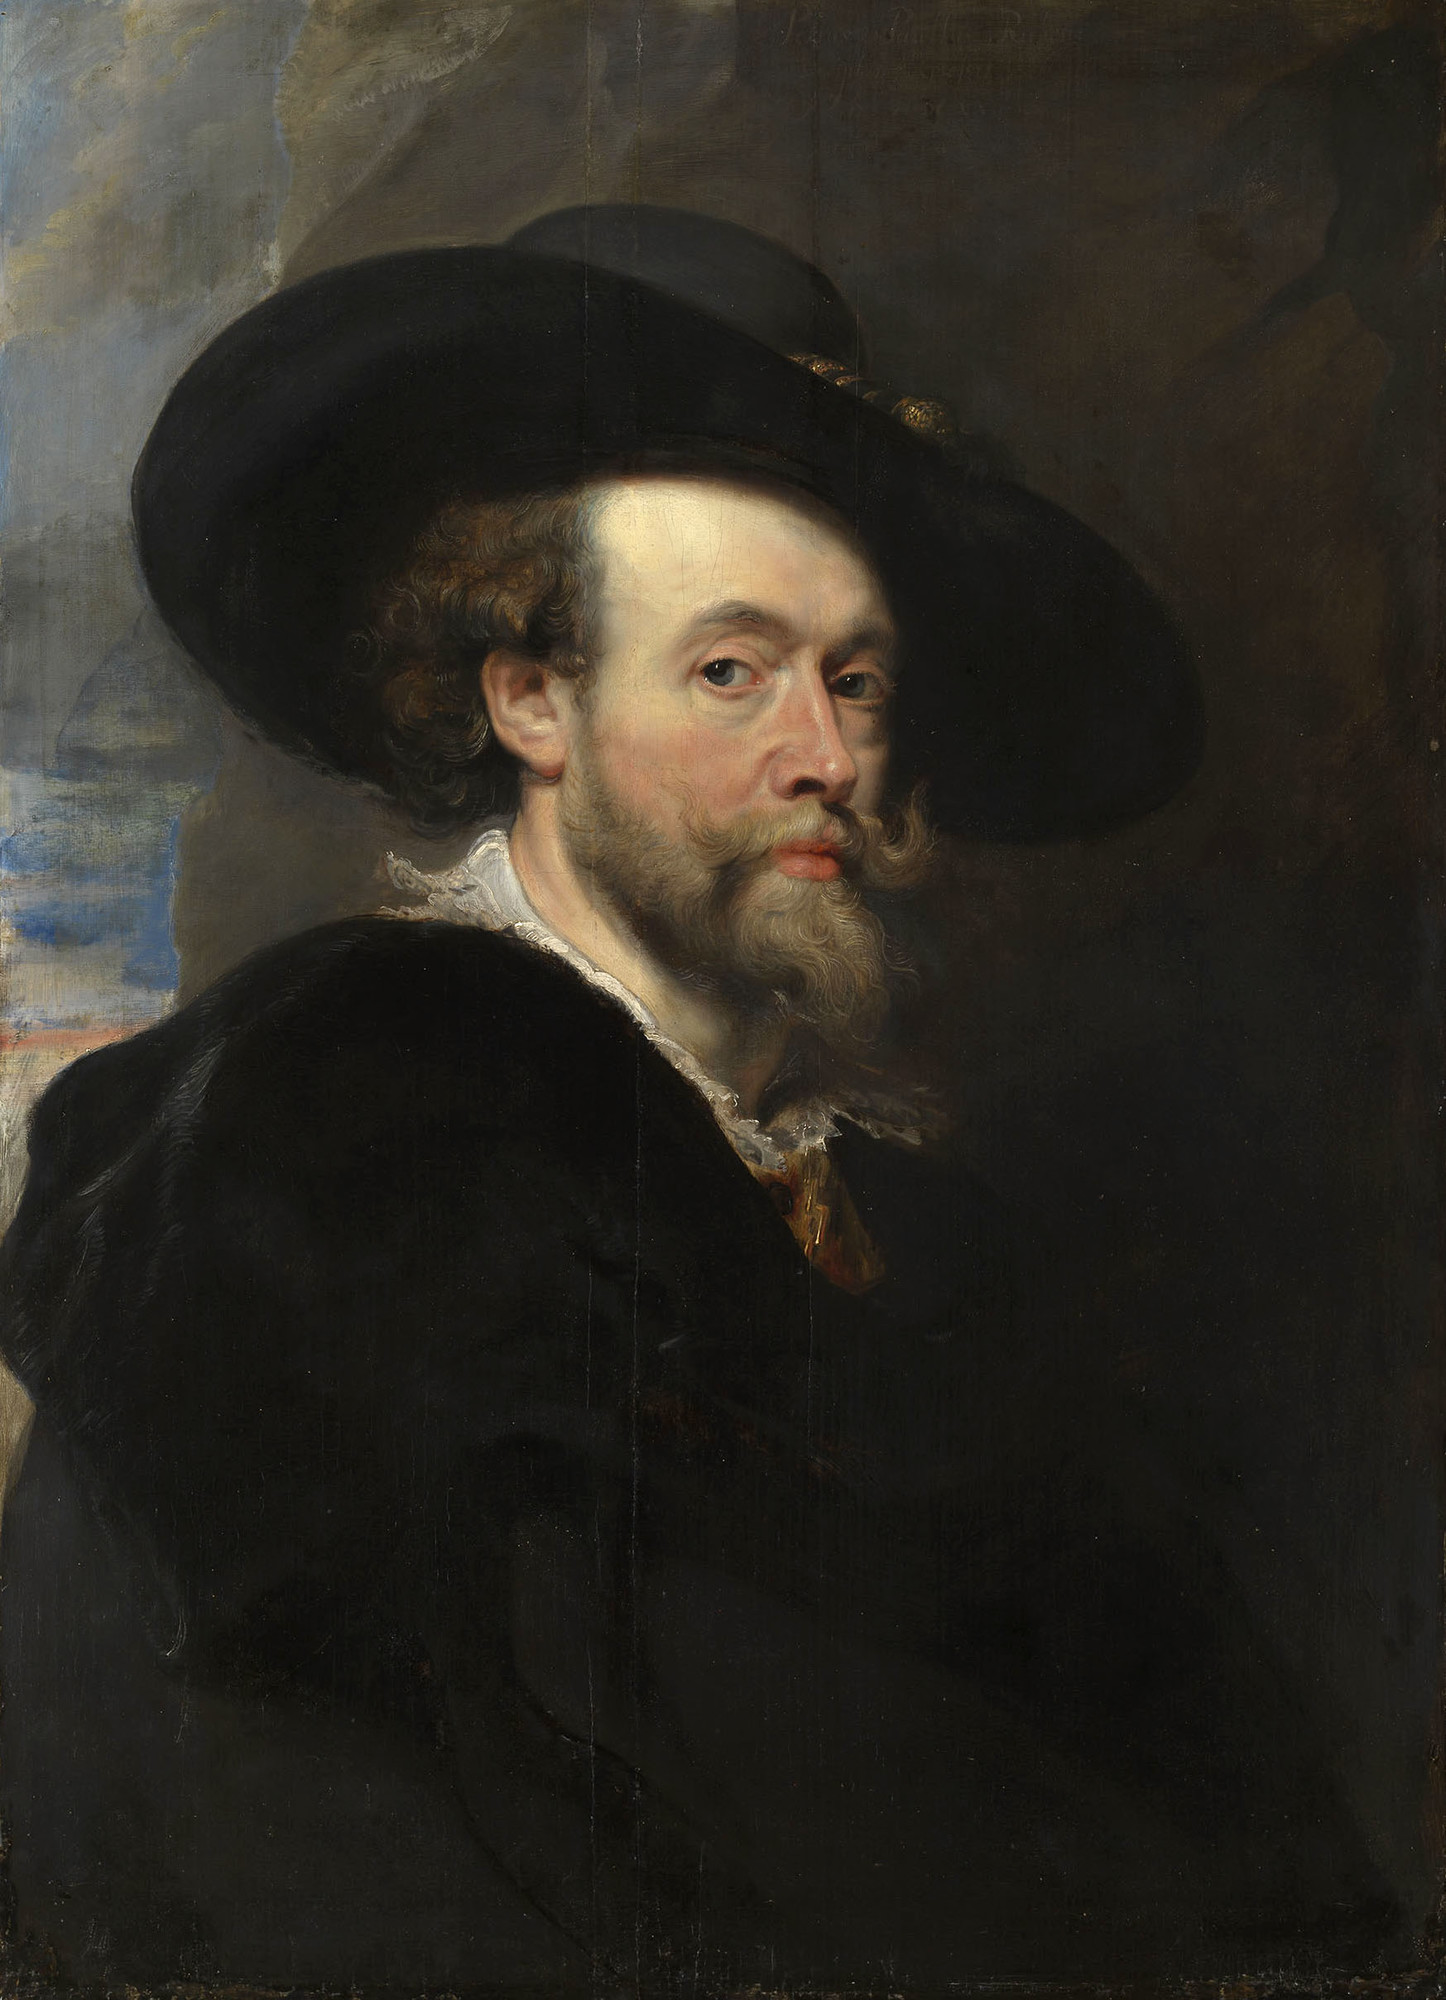 https://media.thisisgallery.com/wp-content/uploads/2018/12/rubens-1.jpg